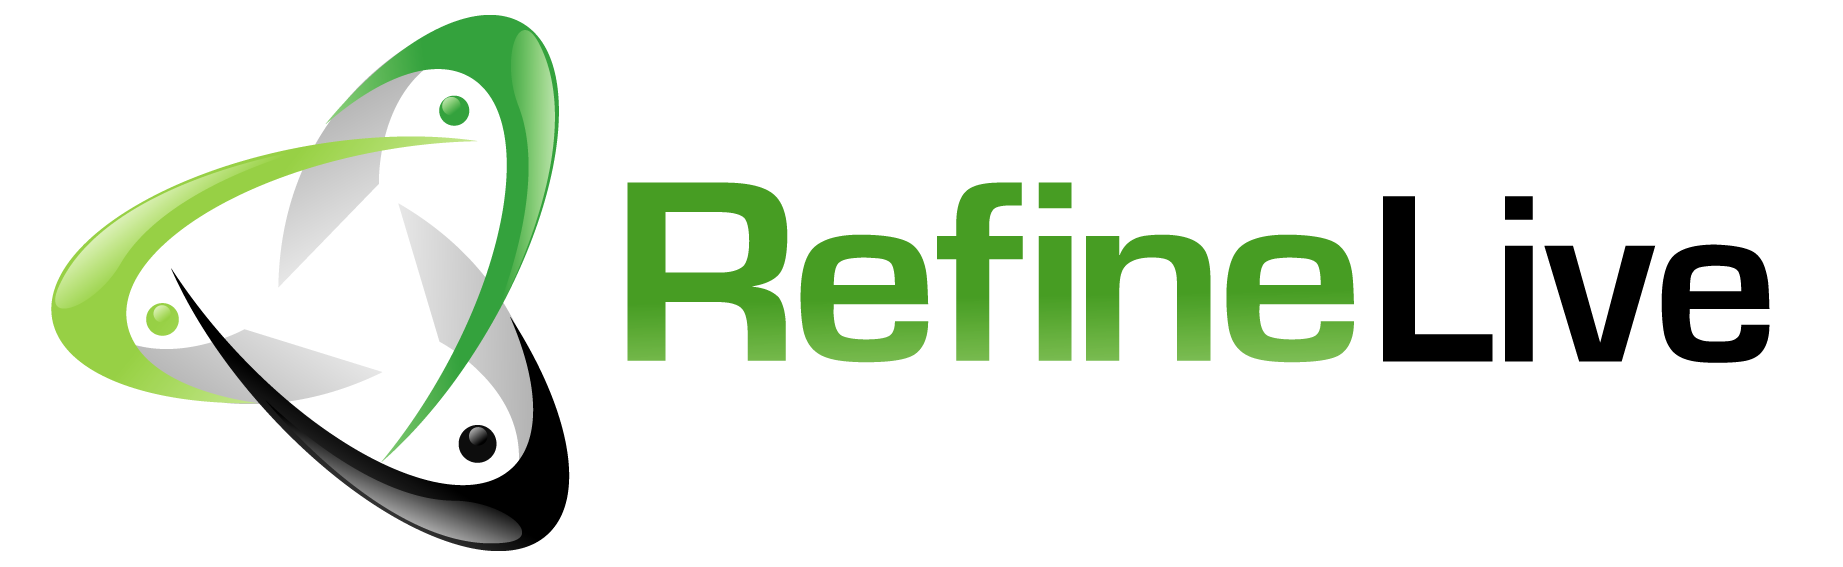 RefineLive